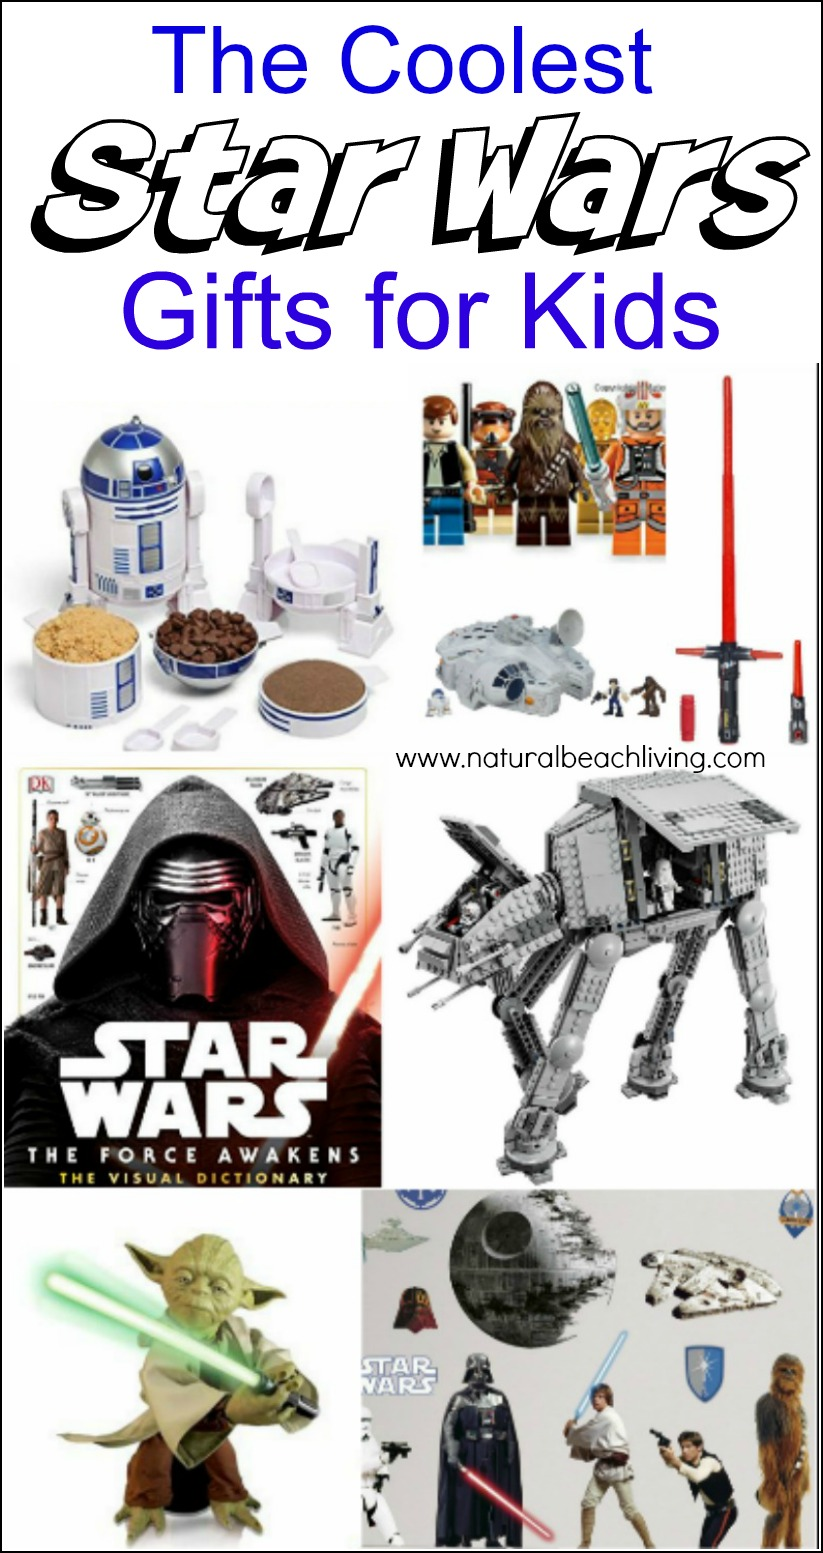 The Coolest Star Wars Gifts for Kids